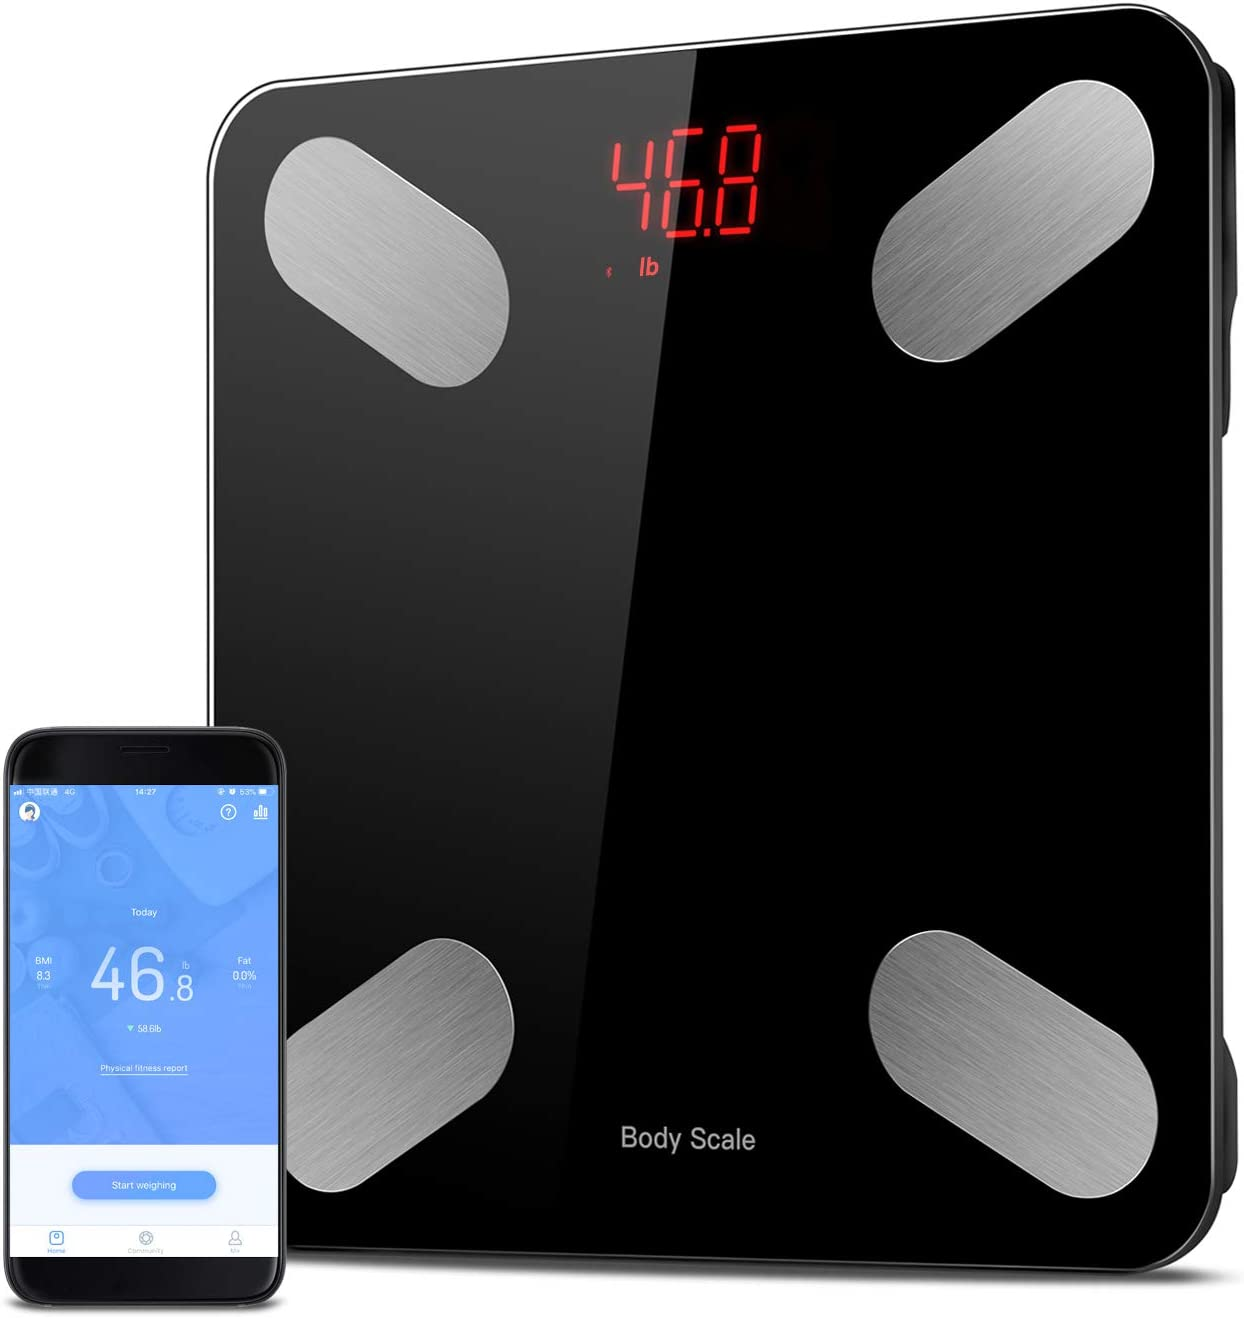 Sunvito Bluetooth Body Fat Scale,Smart BMI Scale Digital Bathroom Weight Scale,Auto Monitor 23 Body Composition Analyzer with Smartphone APP 396 lb Black